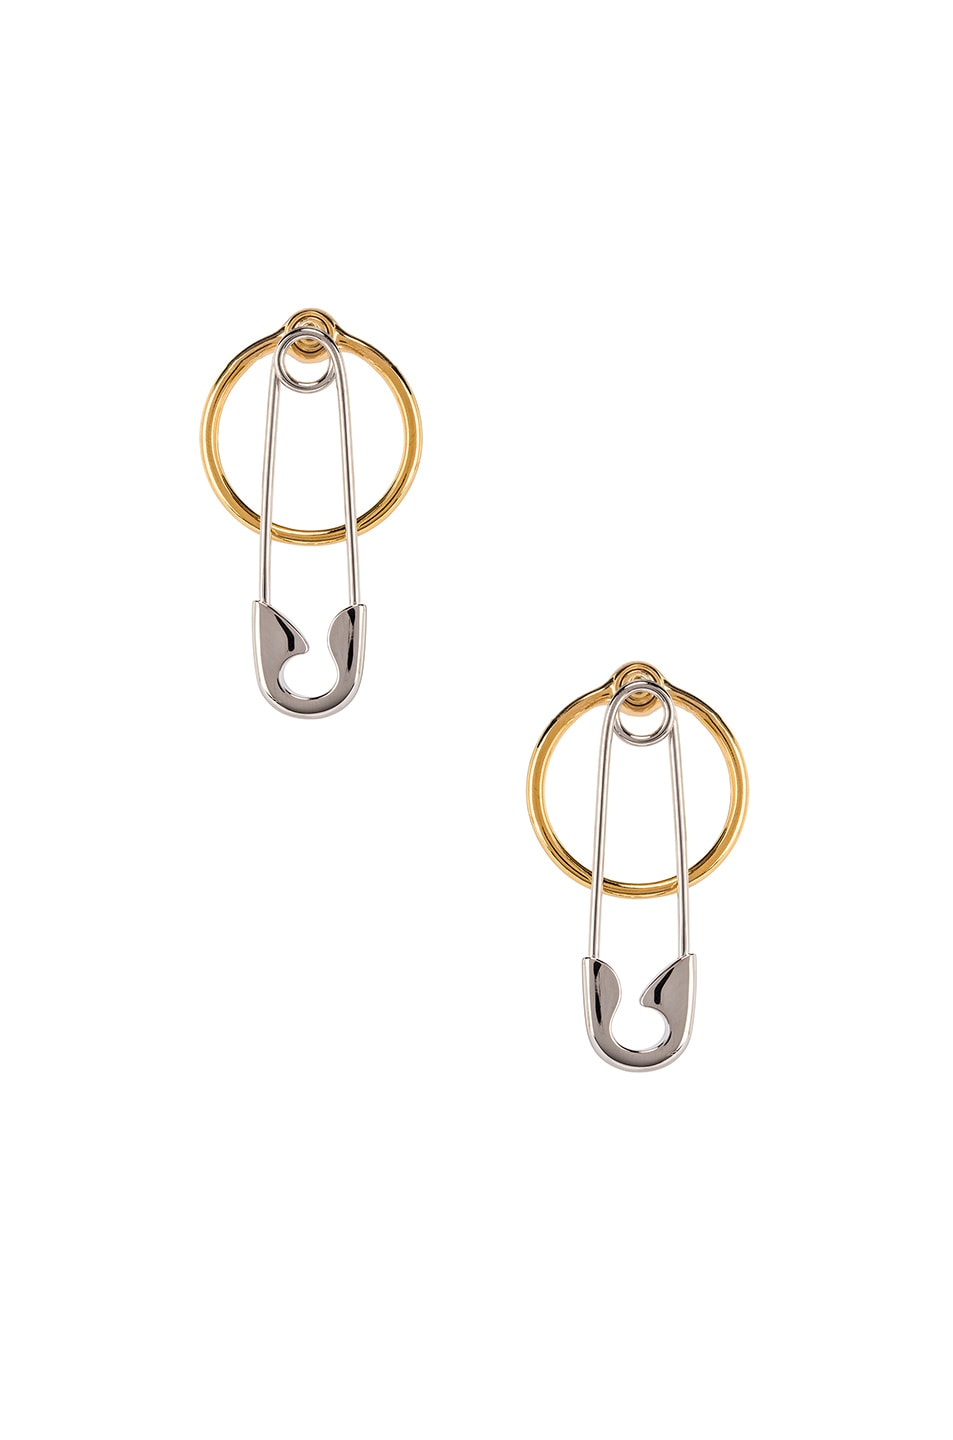 Image 1 of Alexander Wang Safety Pin and Hoop Earrings in Silver and Gold